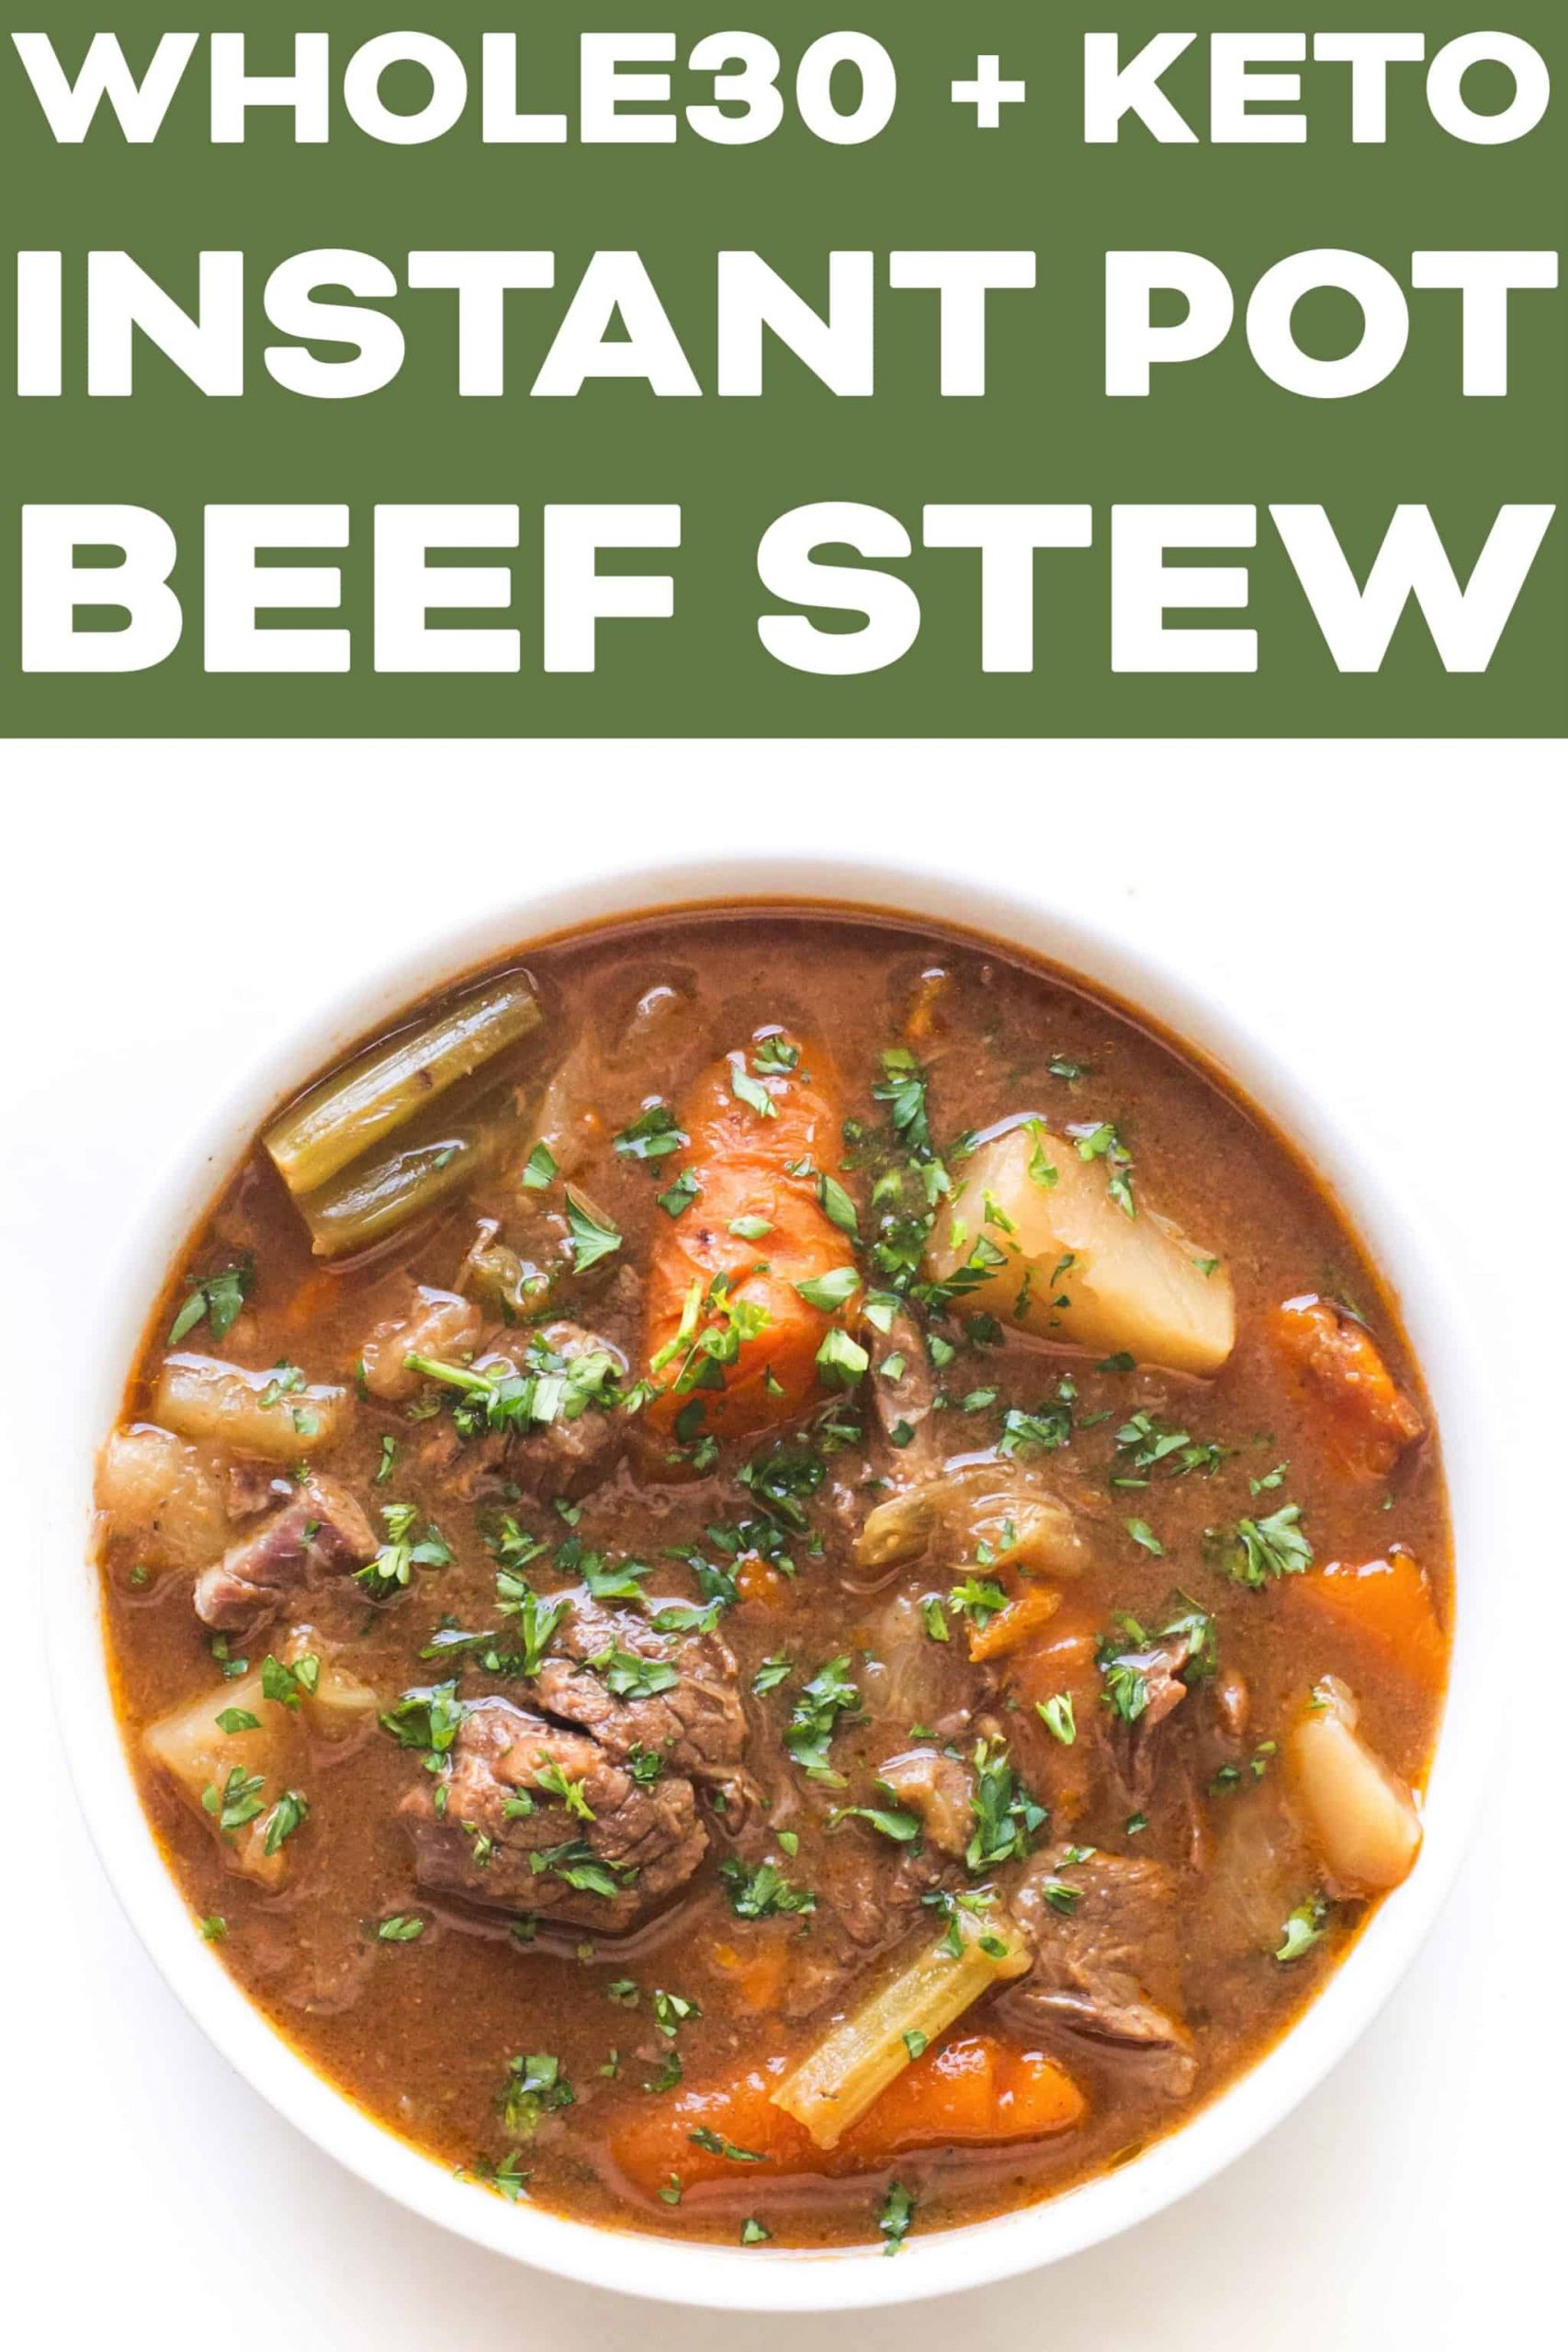 Instant Pot Keto Stew  Whole30 Keto Instant Pot Beef Stew Tastes Lovely